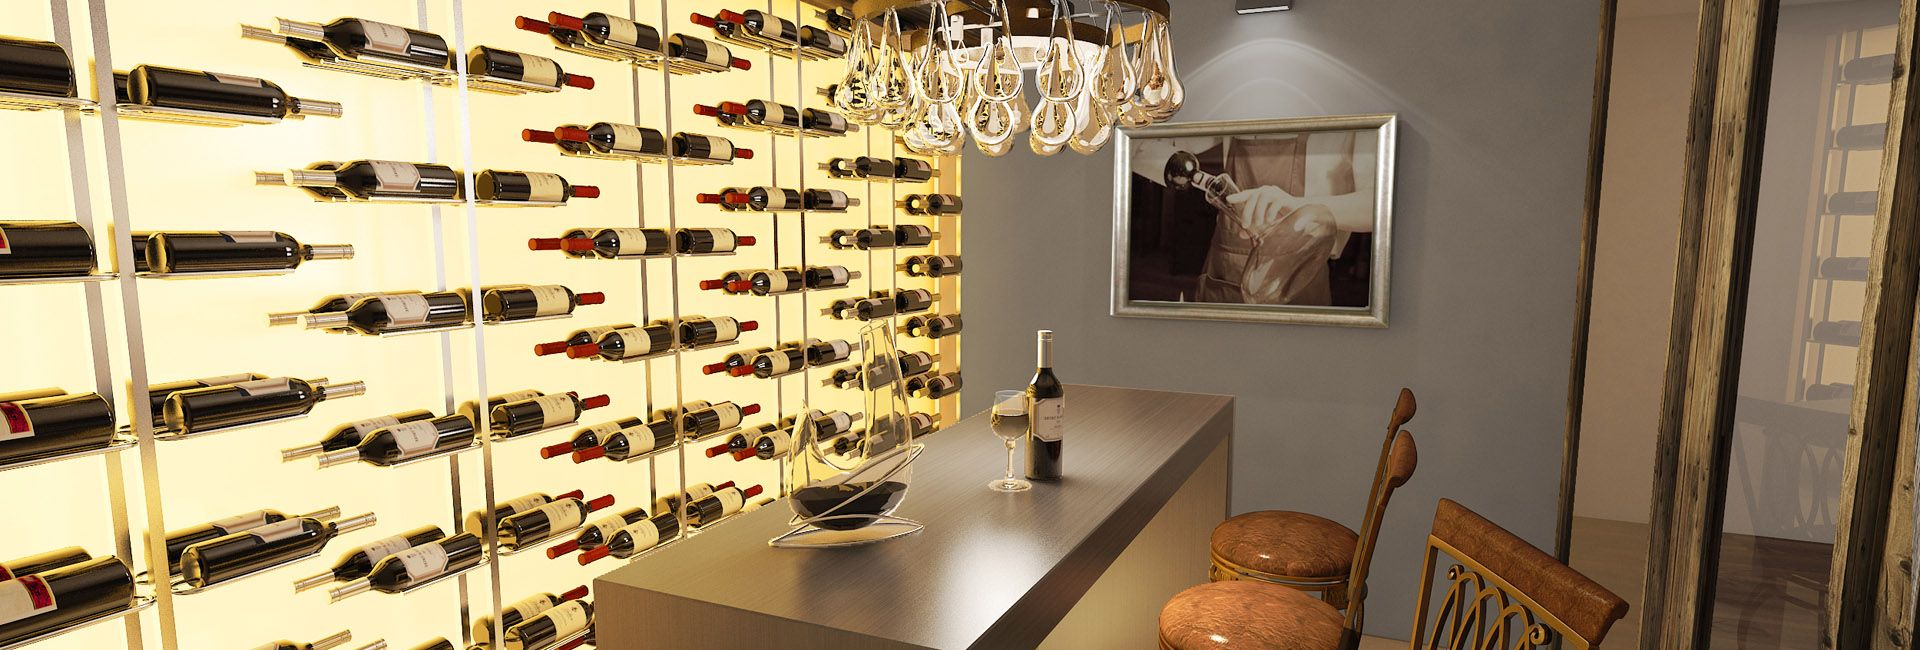 More wine display ideas for butlers pantry aa residence cellar maison bespoke wine cellars wine walls and wine pods tailored to suit your style and wine collection arubaitofo Choice Image